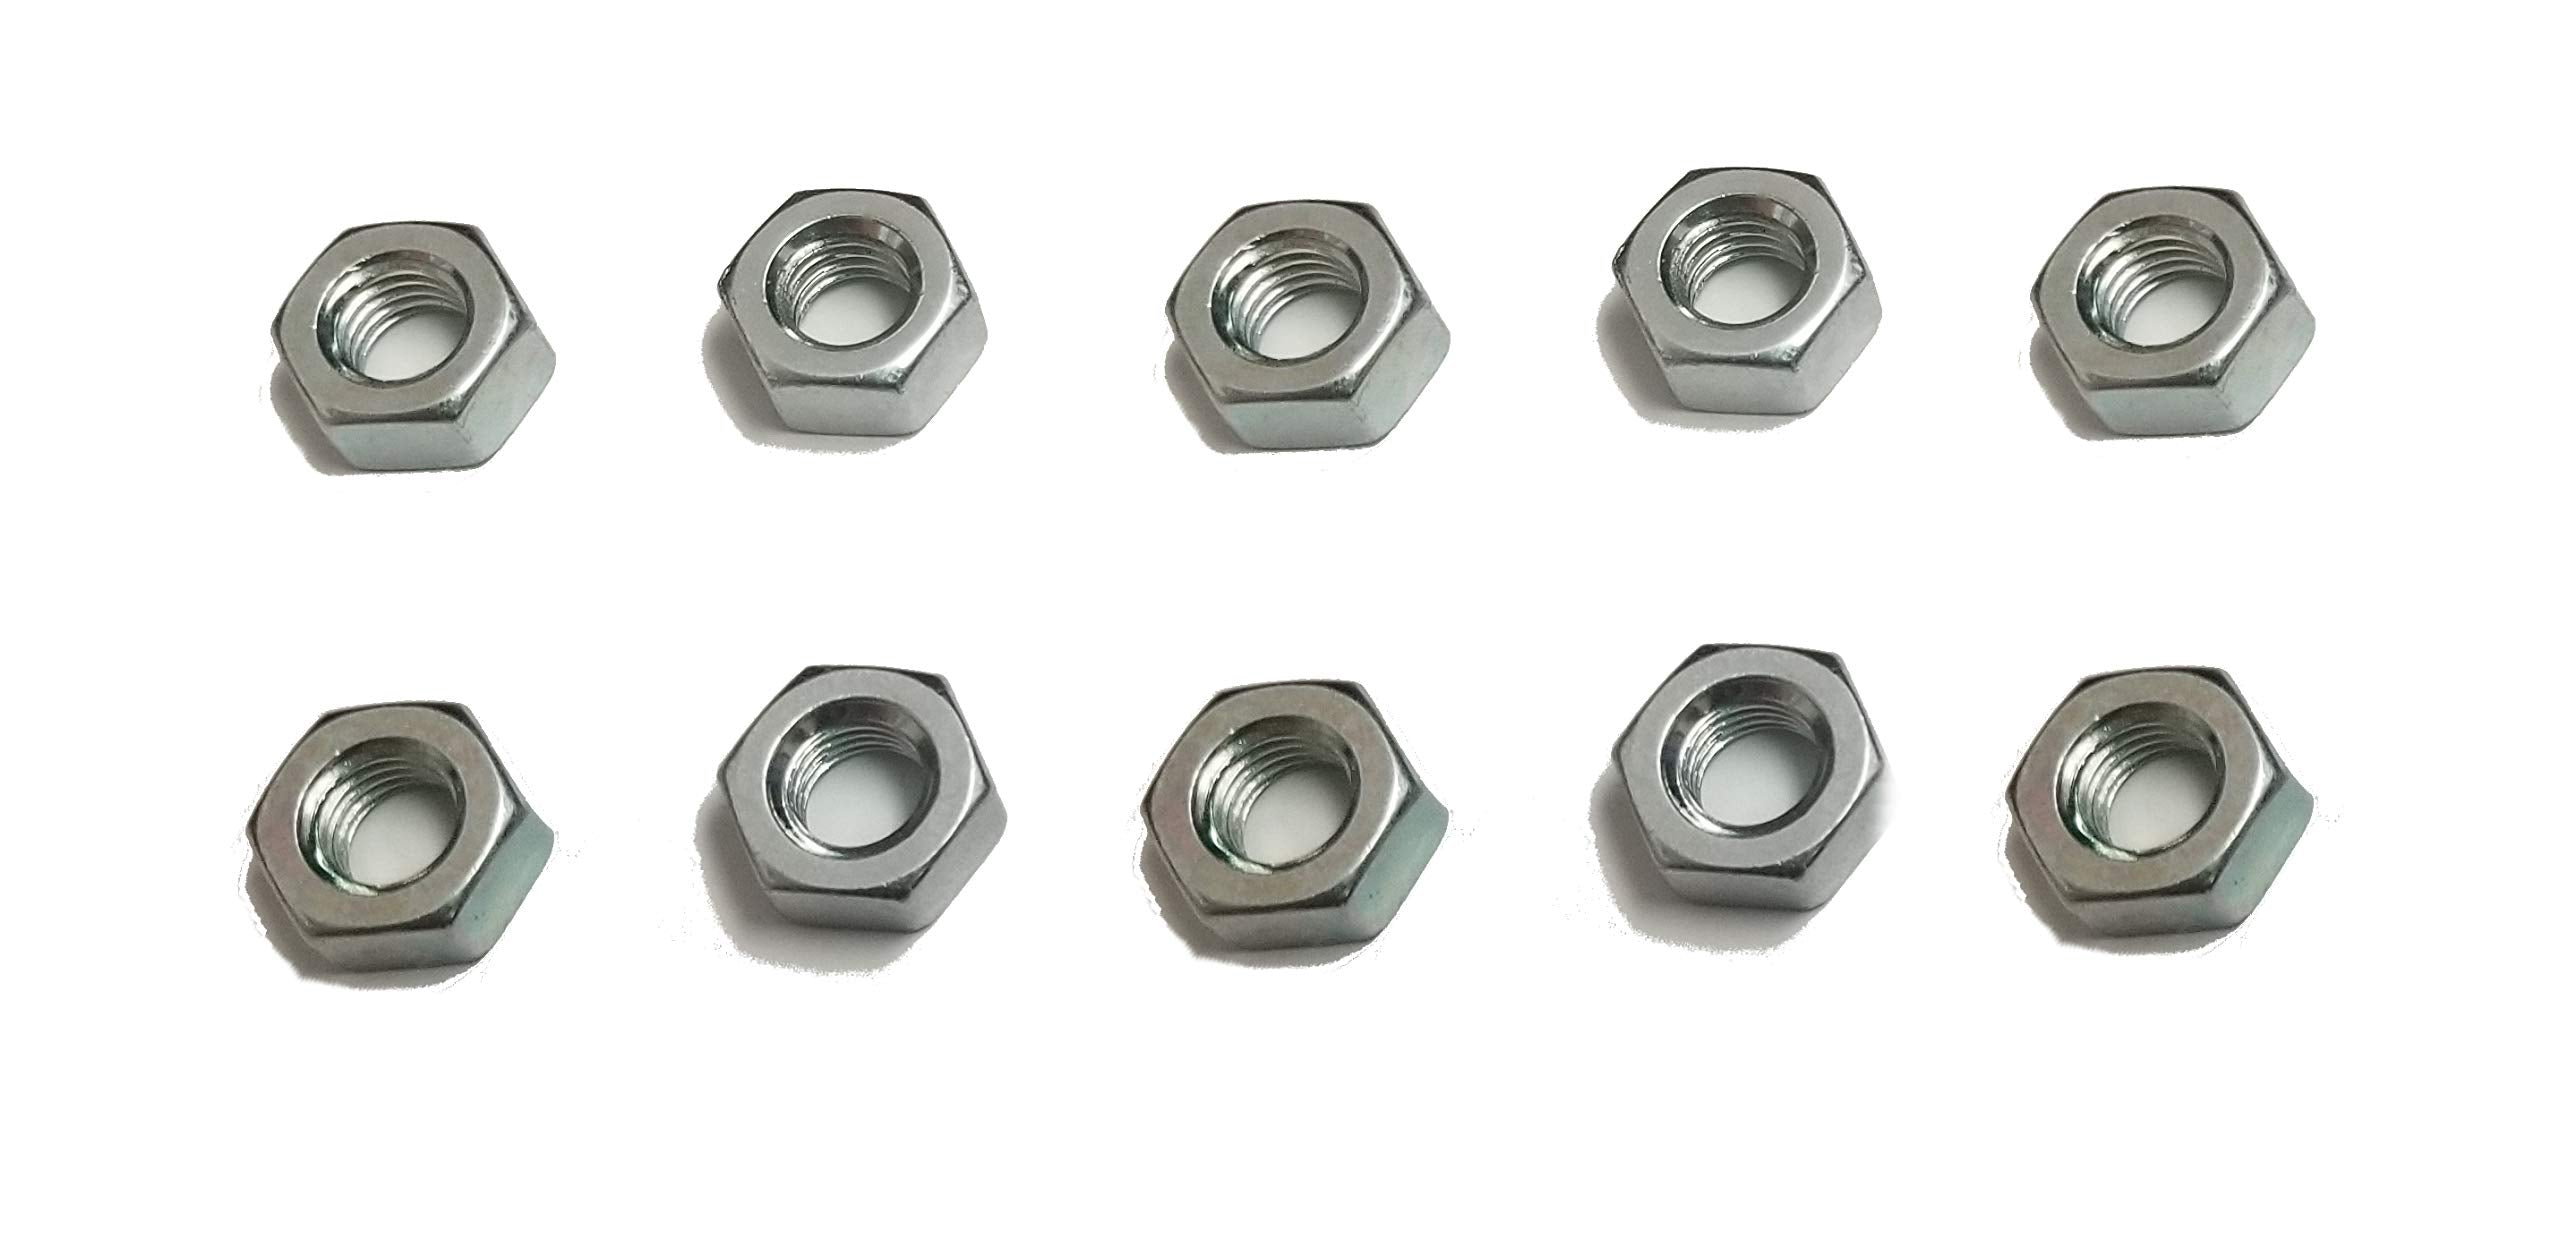 John Deere Original Equipment Nut (10 Pack) - 14M7273